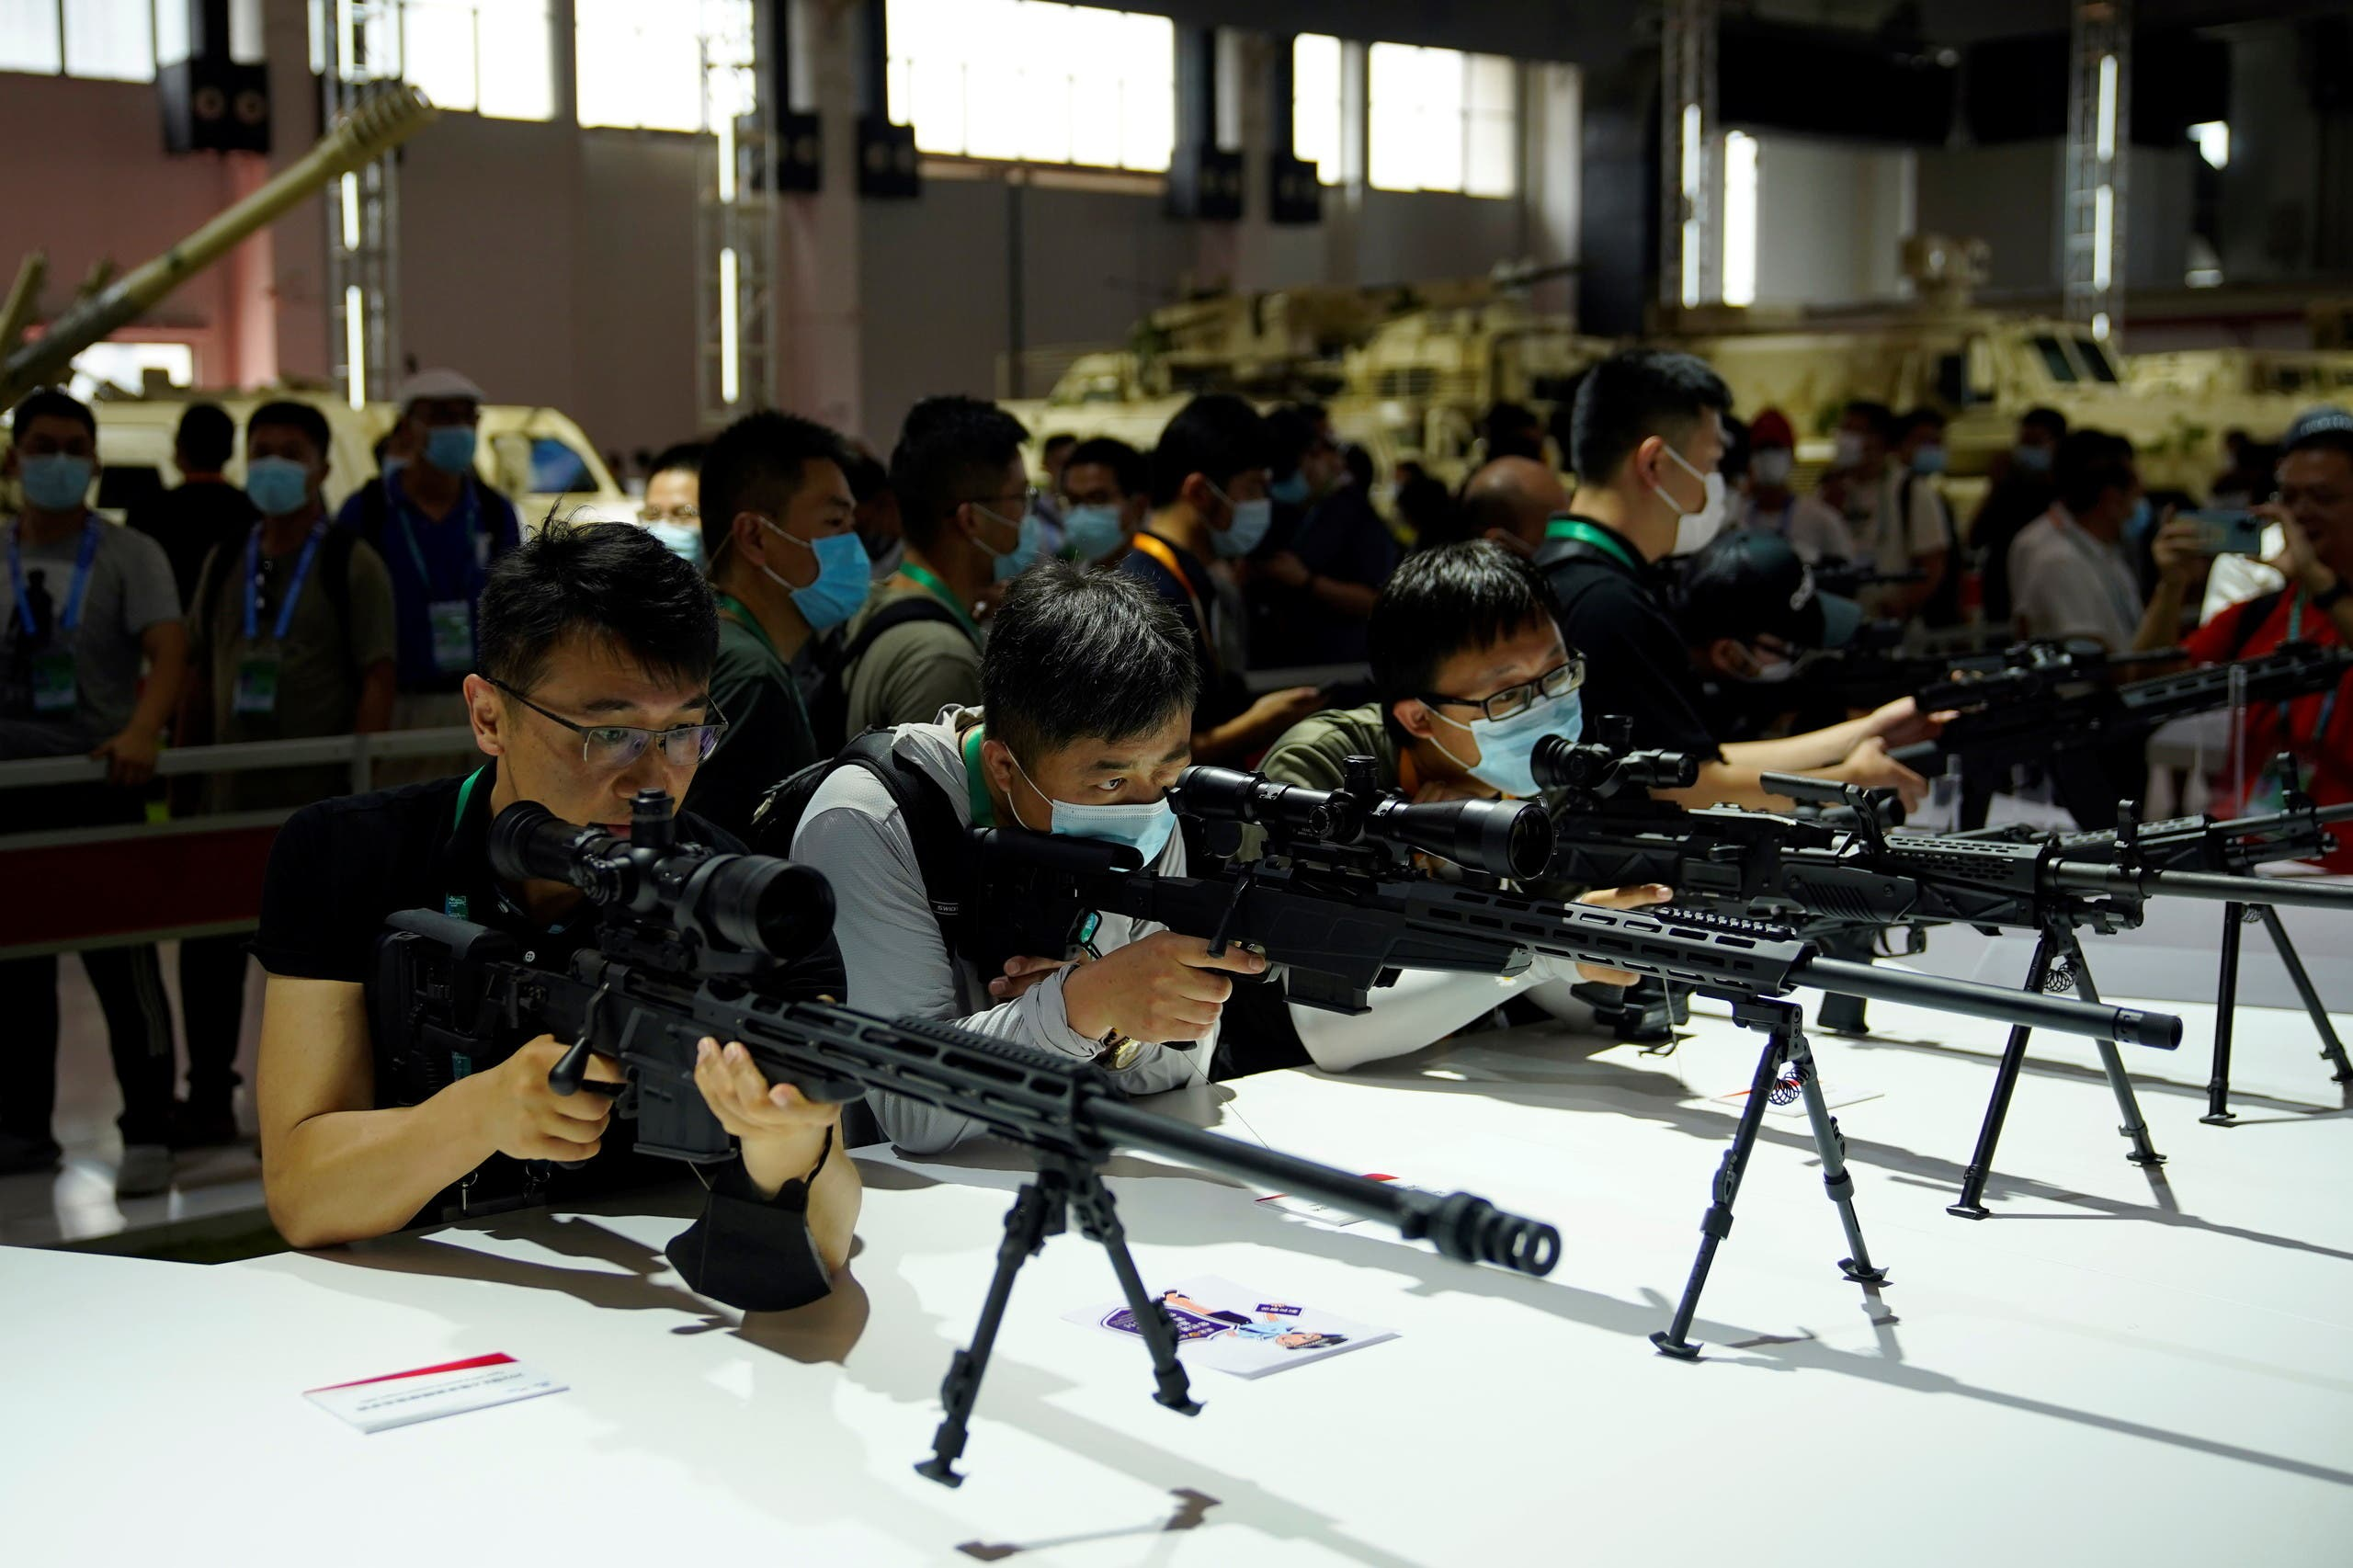 Visitors check on model rifles displayed at the China International Aviation and Aerospace Exhibition, or Airshow China, in Zhuhai, Guangdong province, China September 29, 2021. (Reuters)